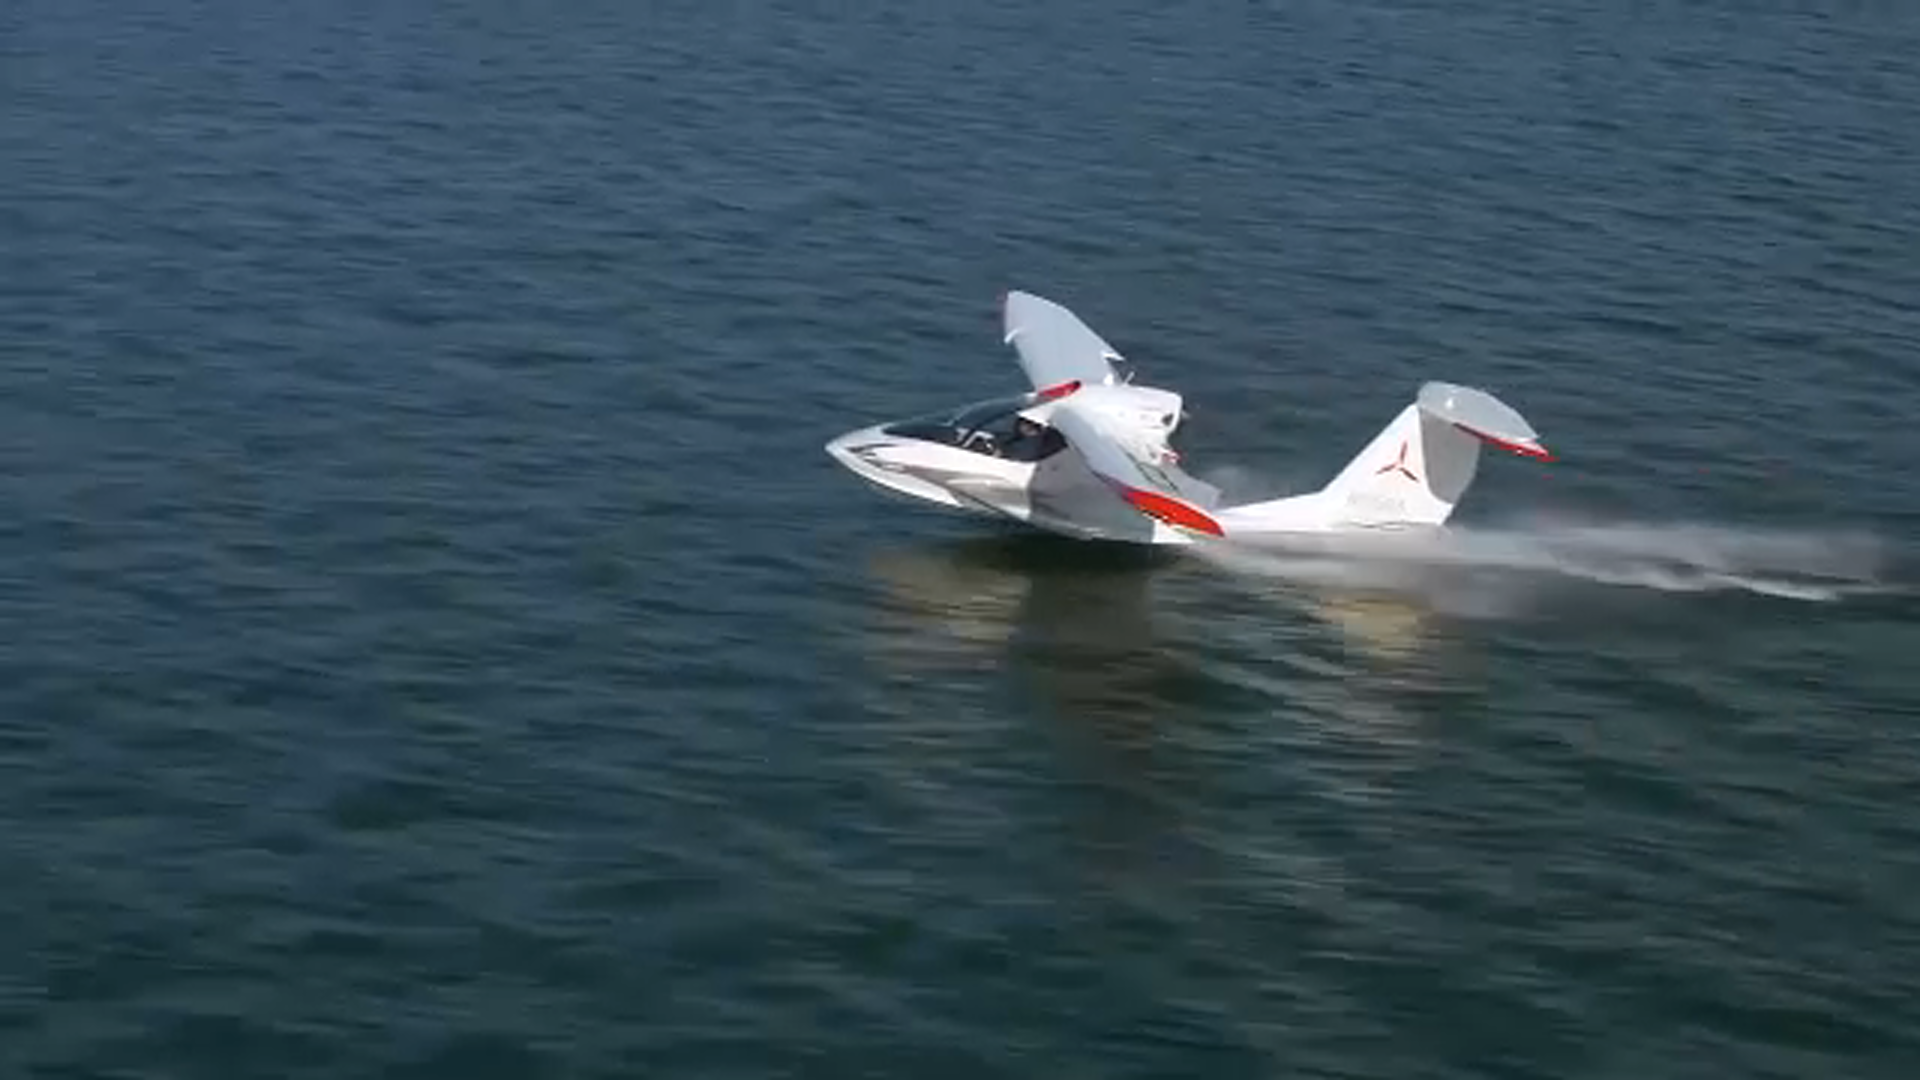 "<div class=""meta image-caption""><div class=""origin-logo origin-image none""><span>none</span></div><span class=""caption-text"">The ICON A5 is built to land on water as well as conventional runways.</span></div>"